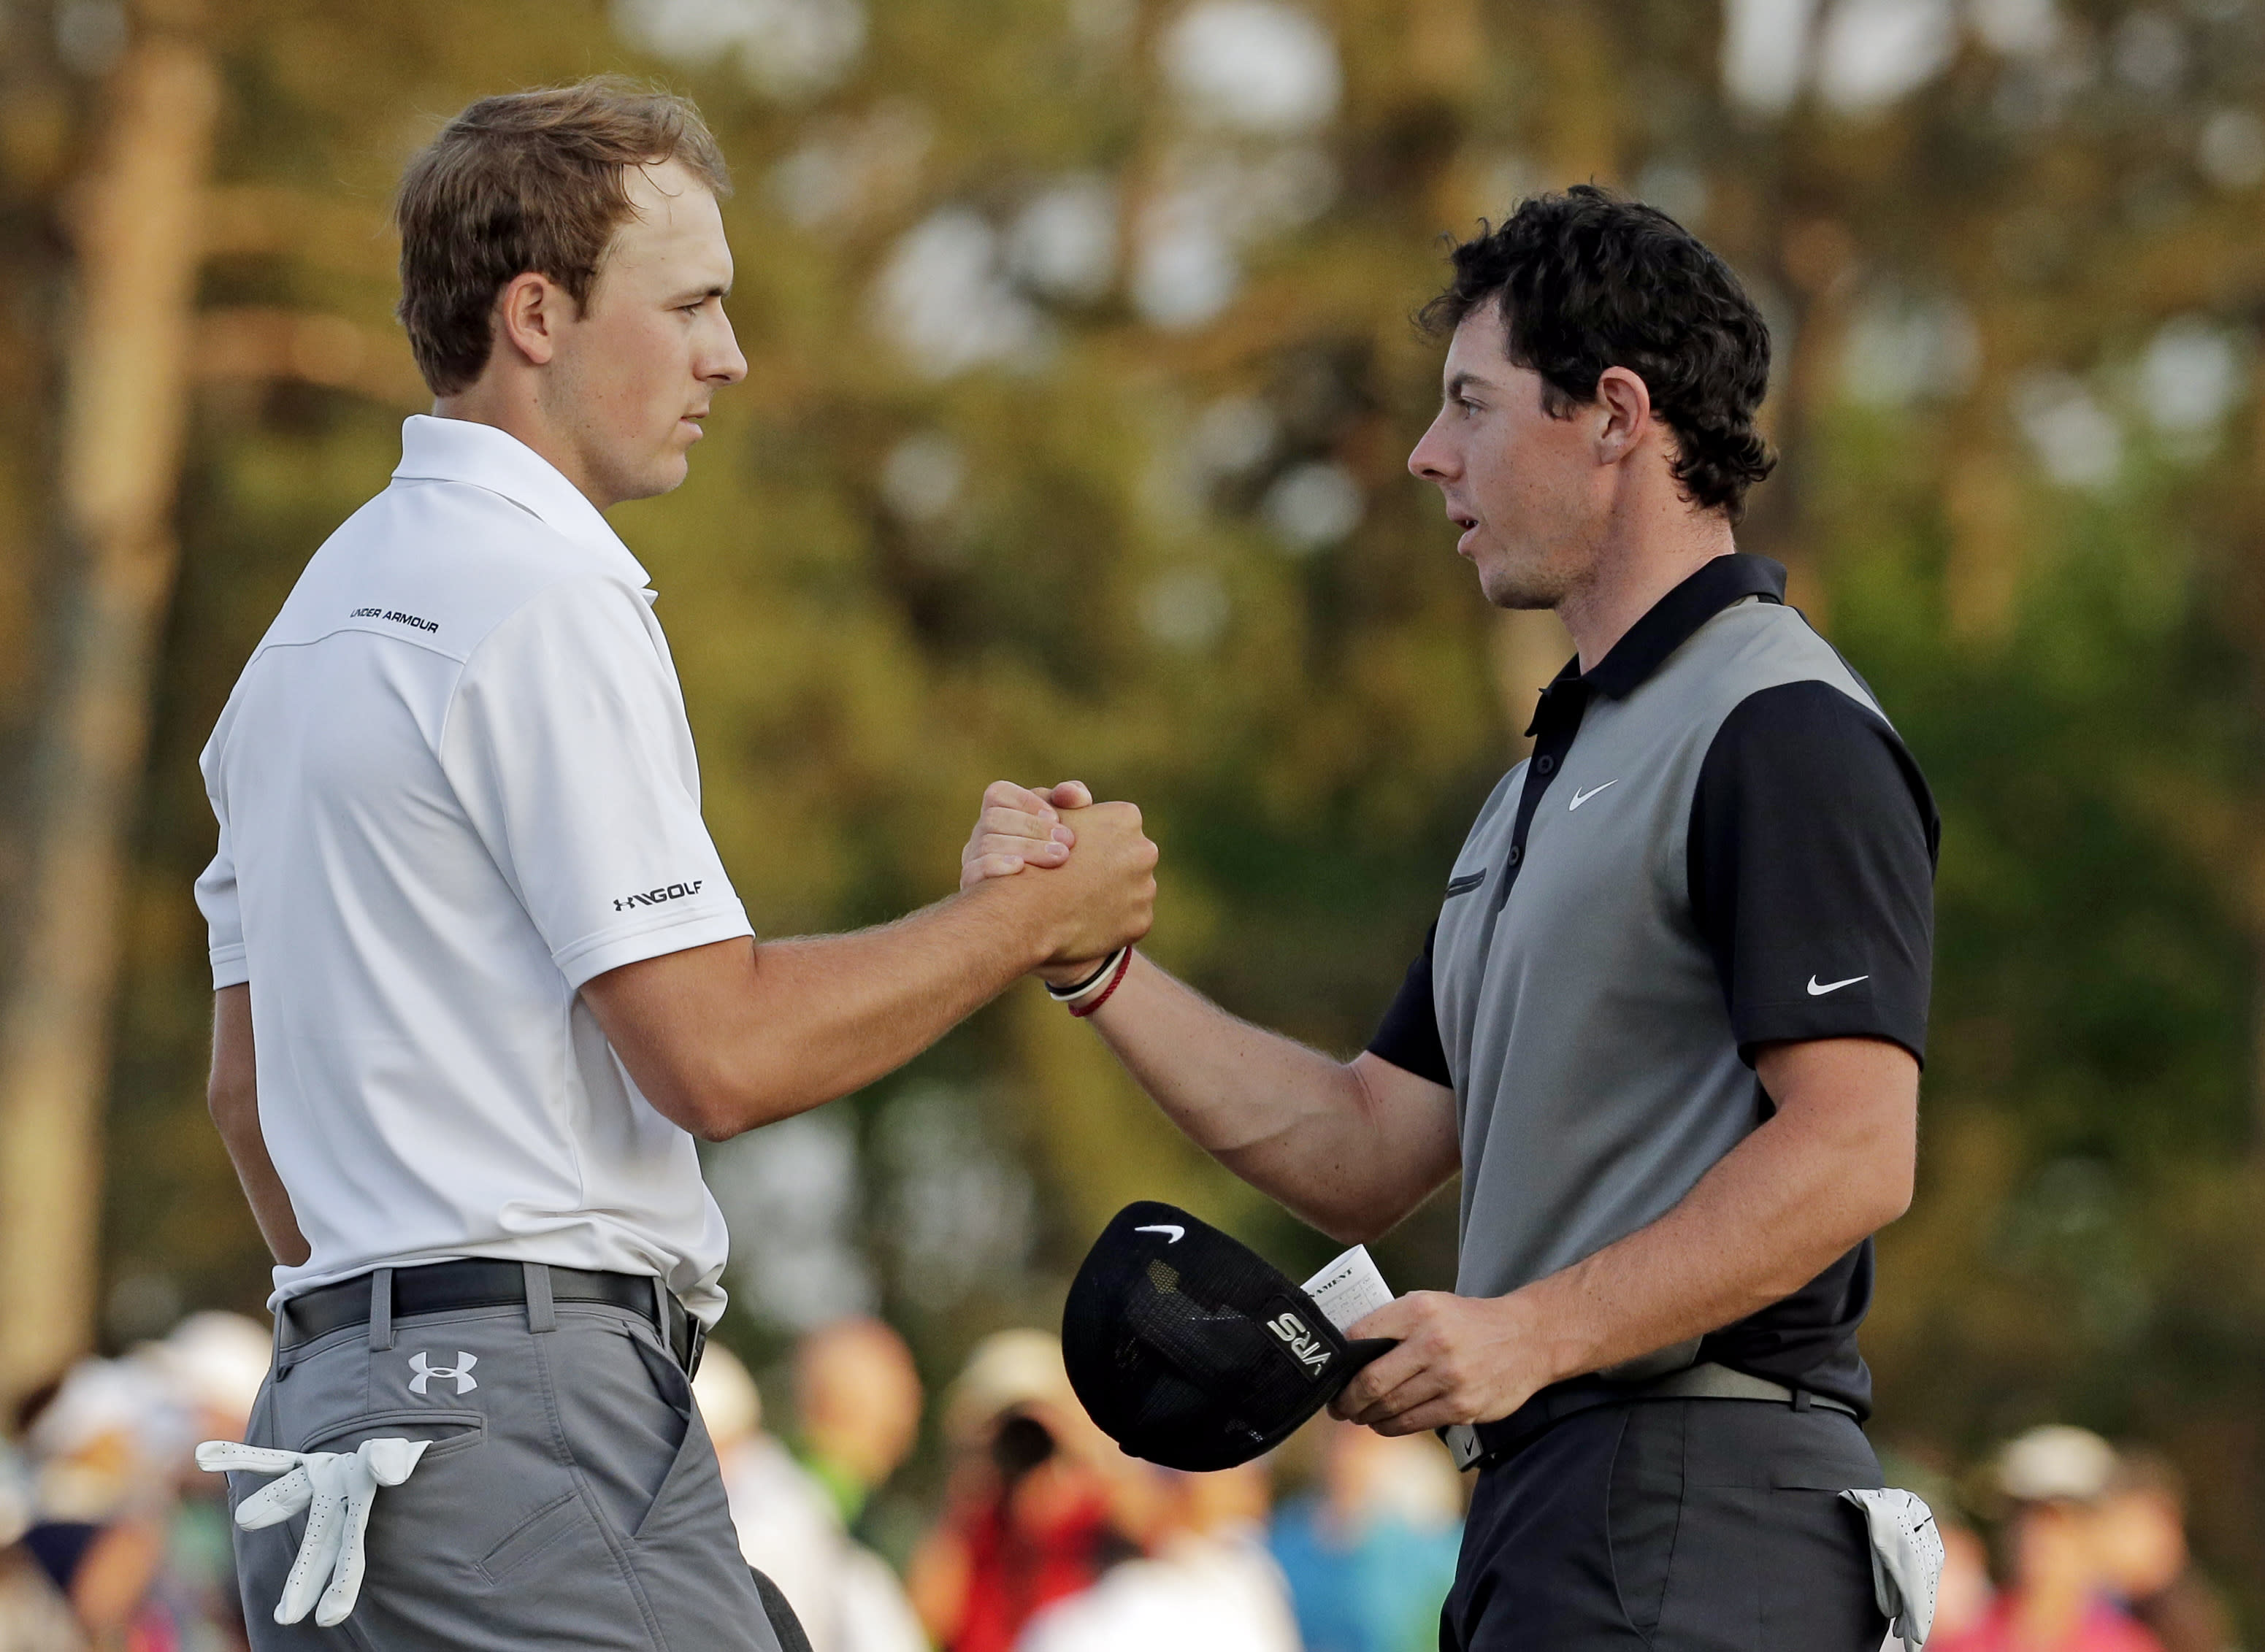 McIlroy, Spieth linked closer now at Players Championship